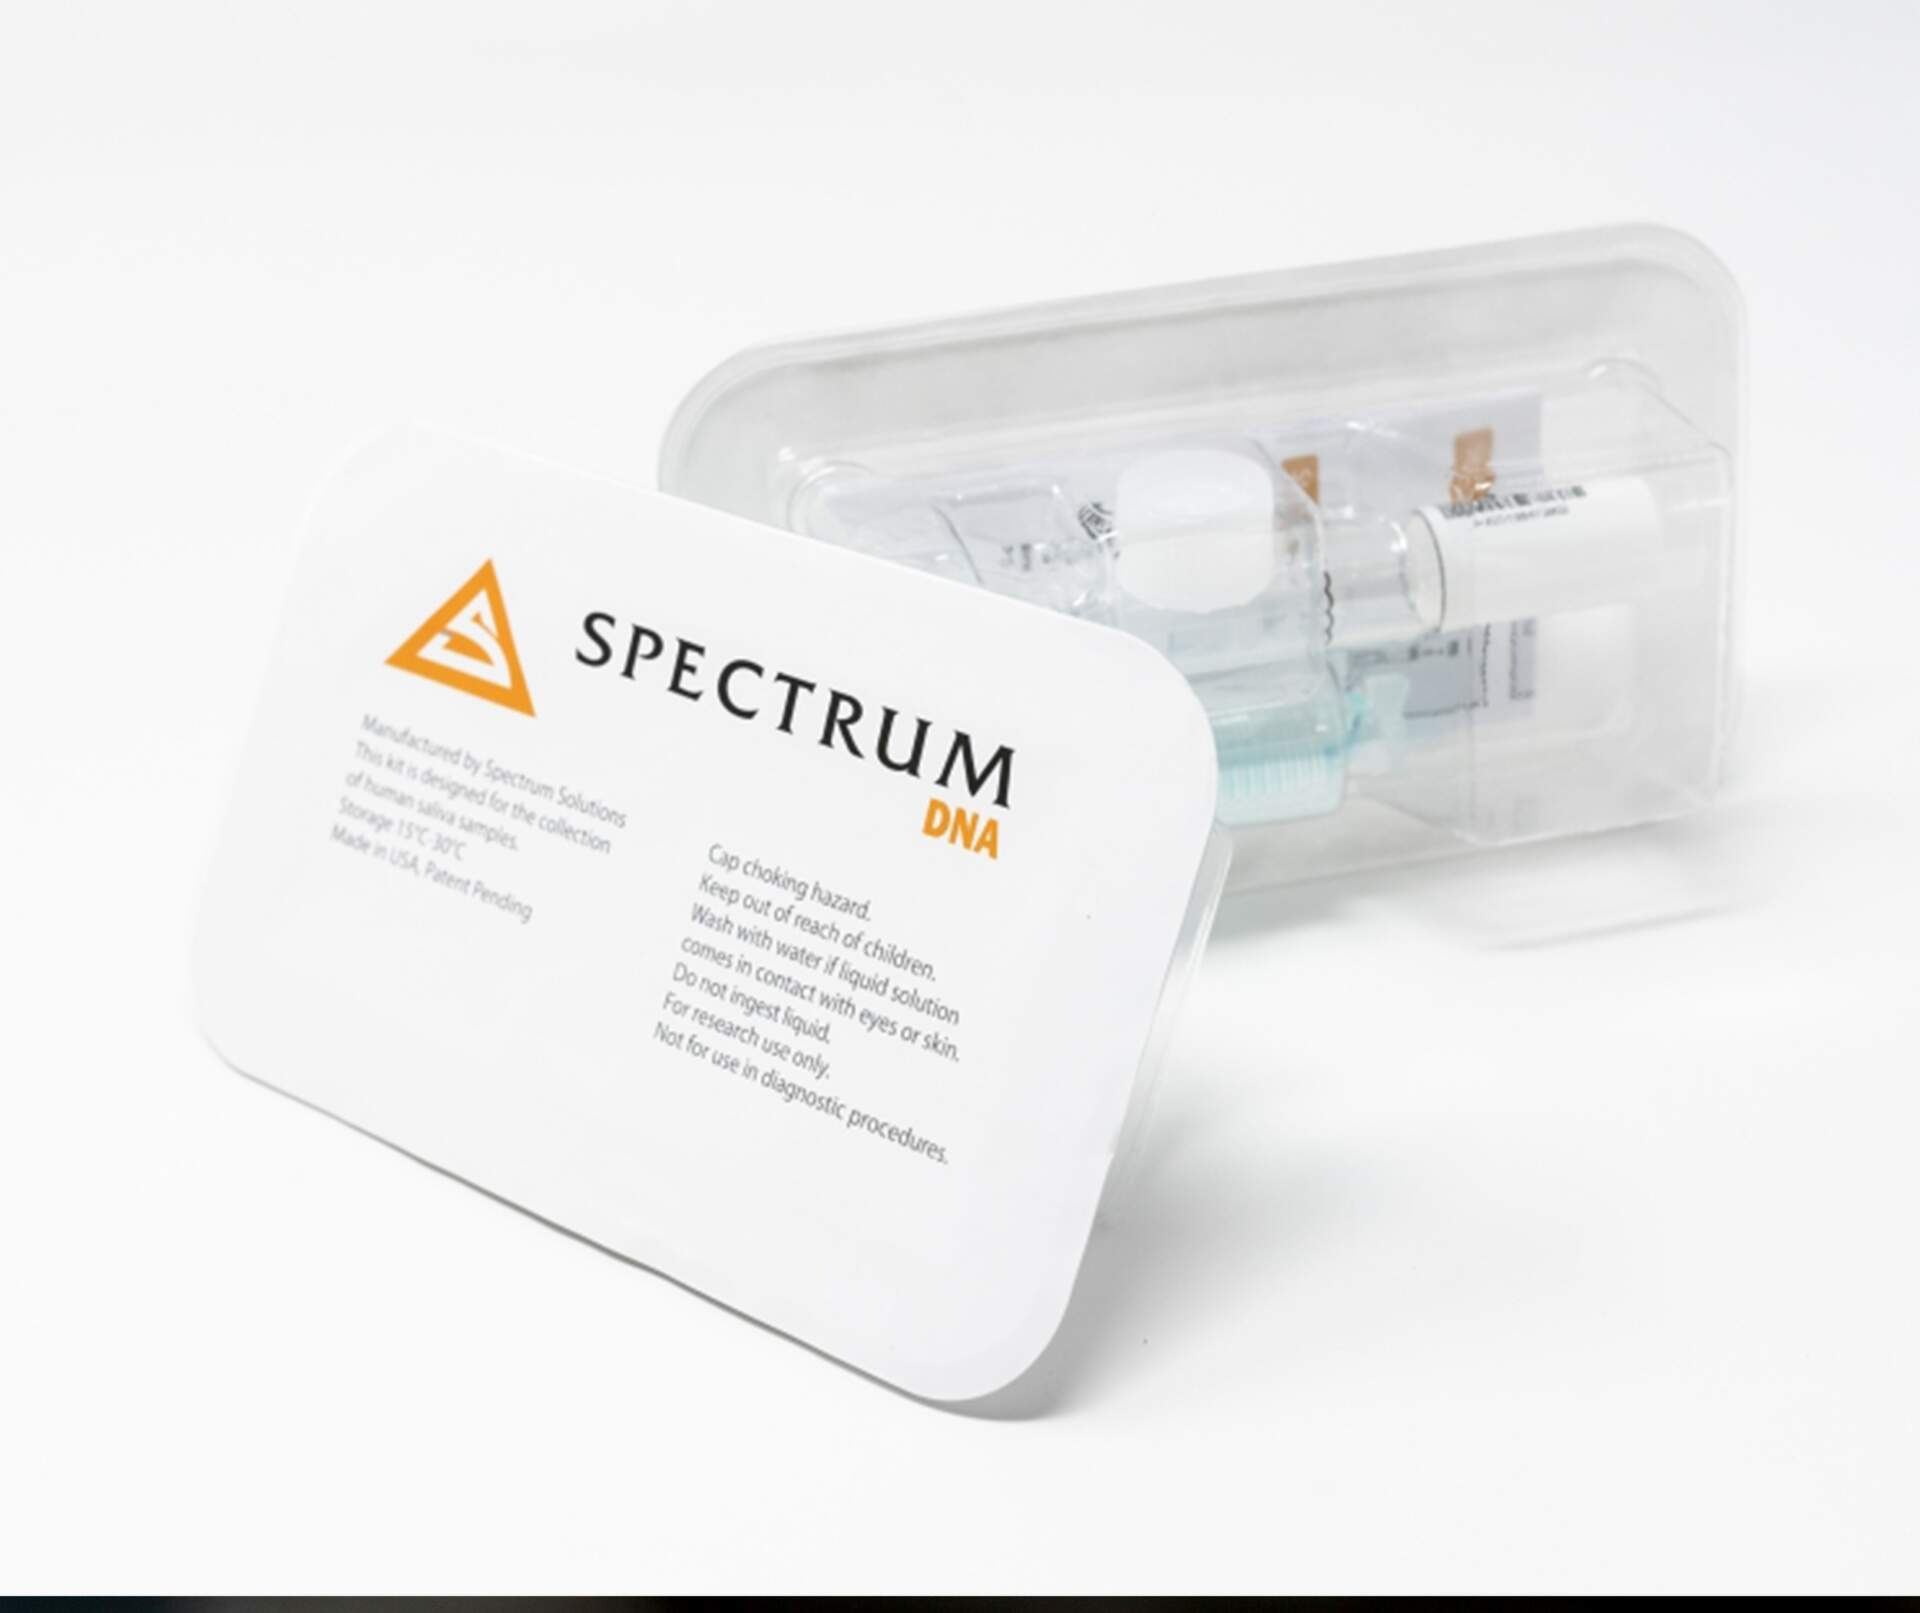 Spectrum DNA Whole Saliva DNA Collection Device - Product Development